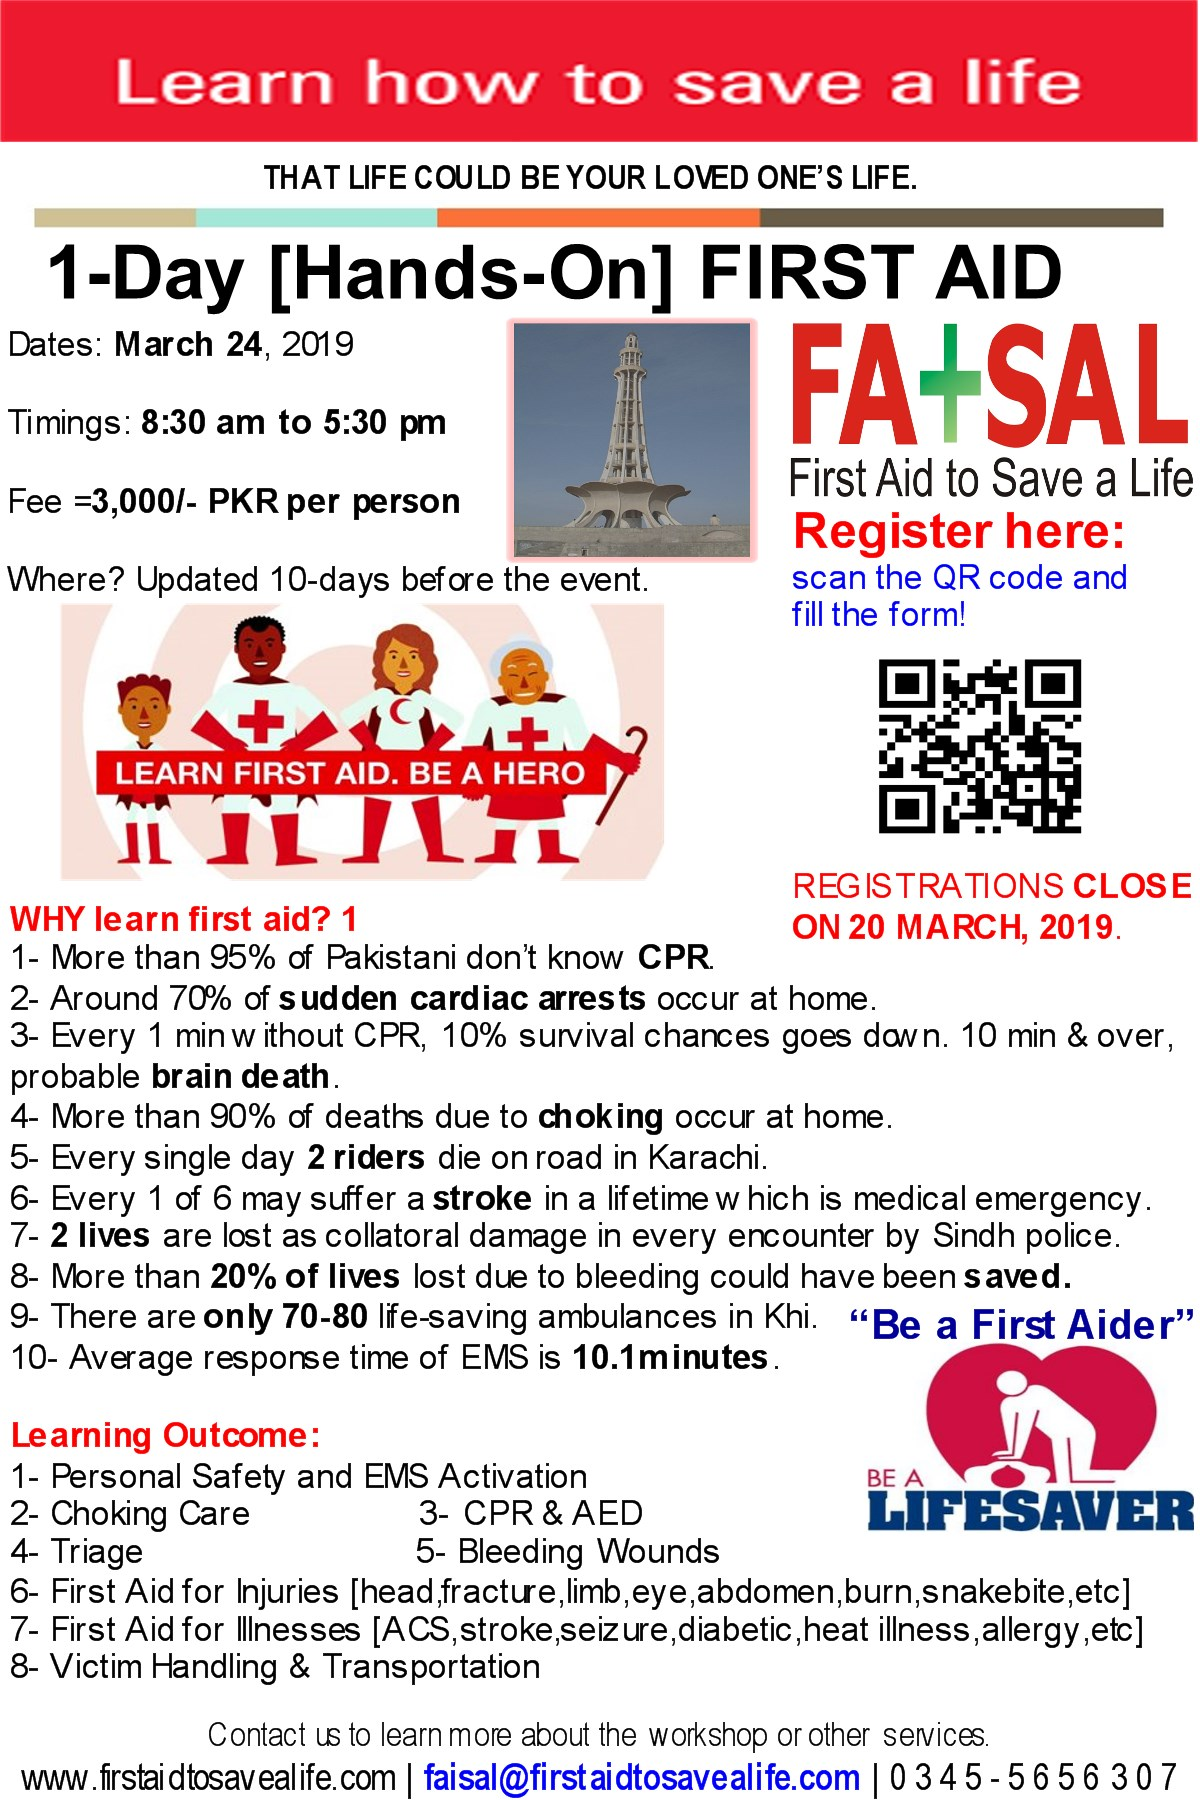 2 Days First Aid With Cpr Aed Karachi April 8 9 Your First